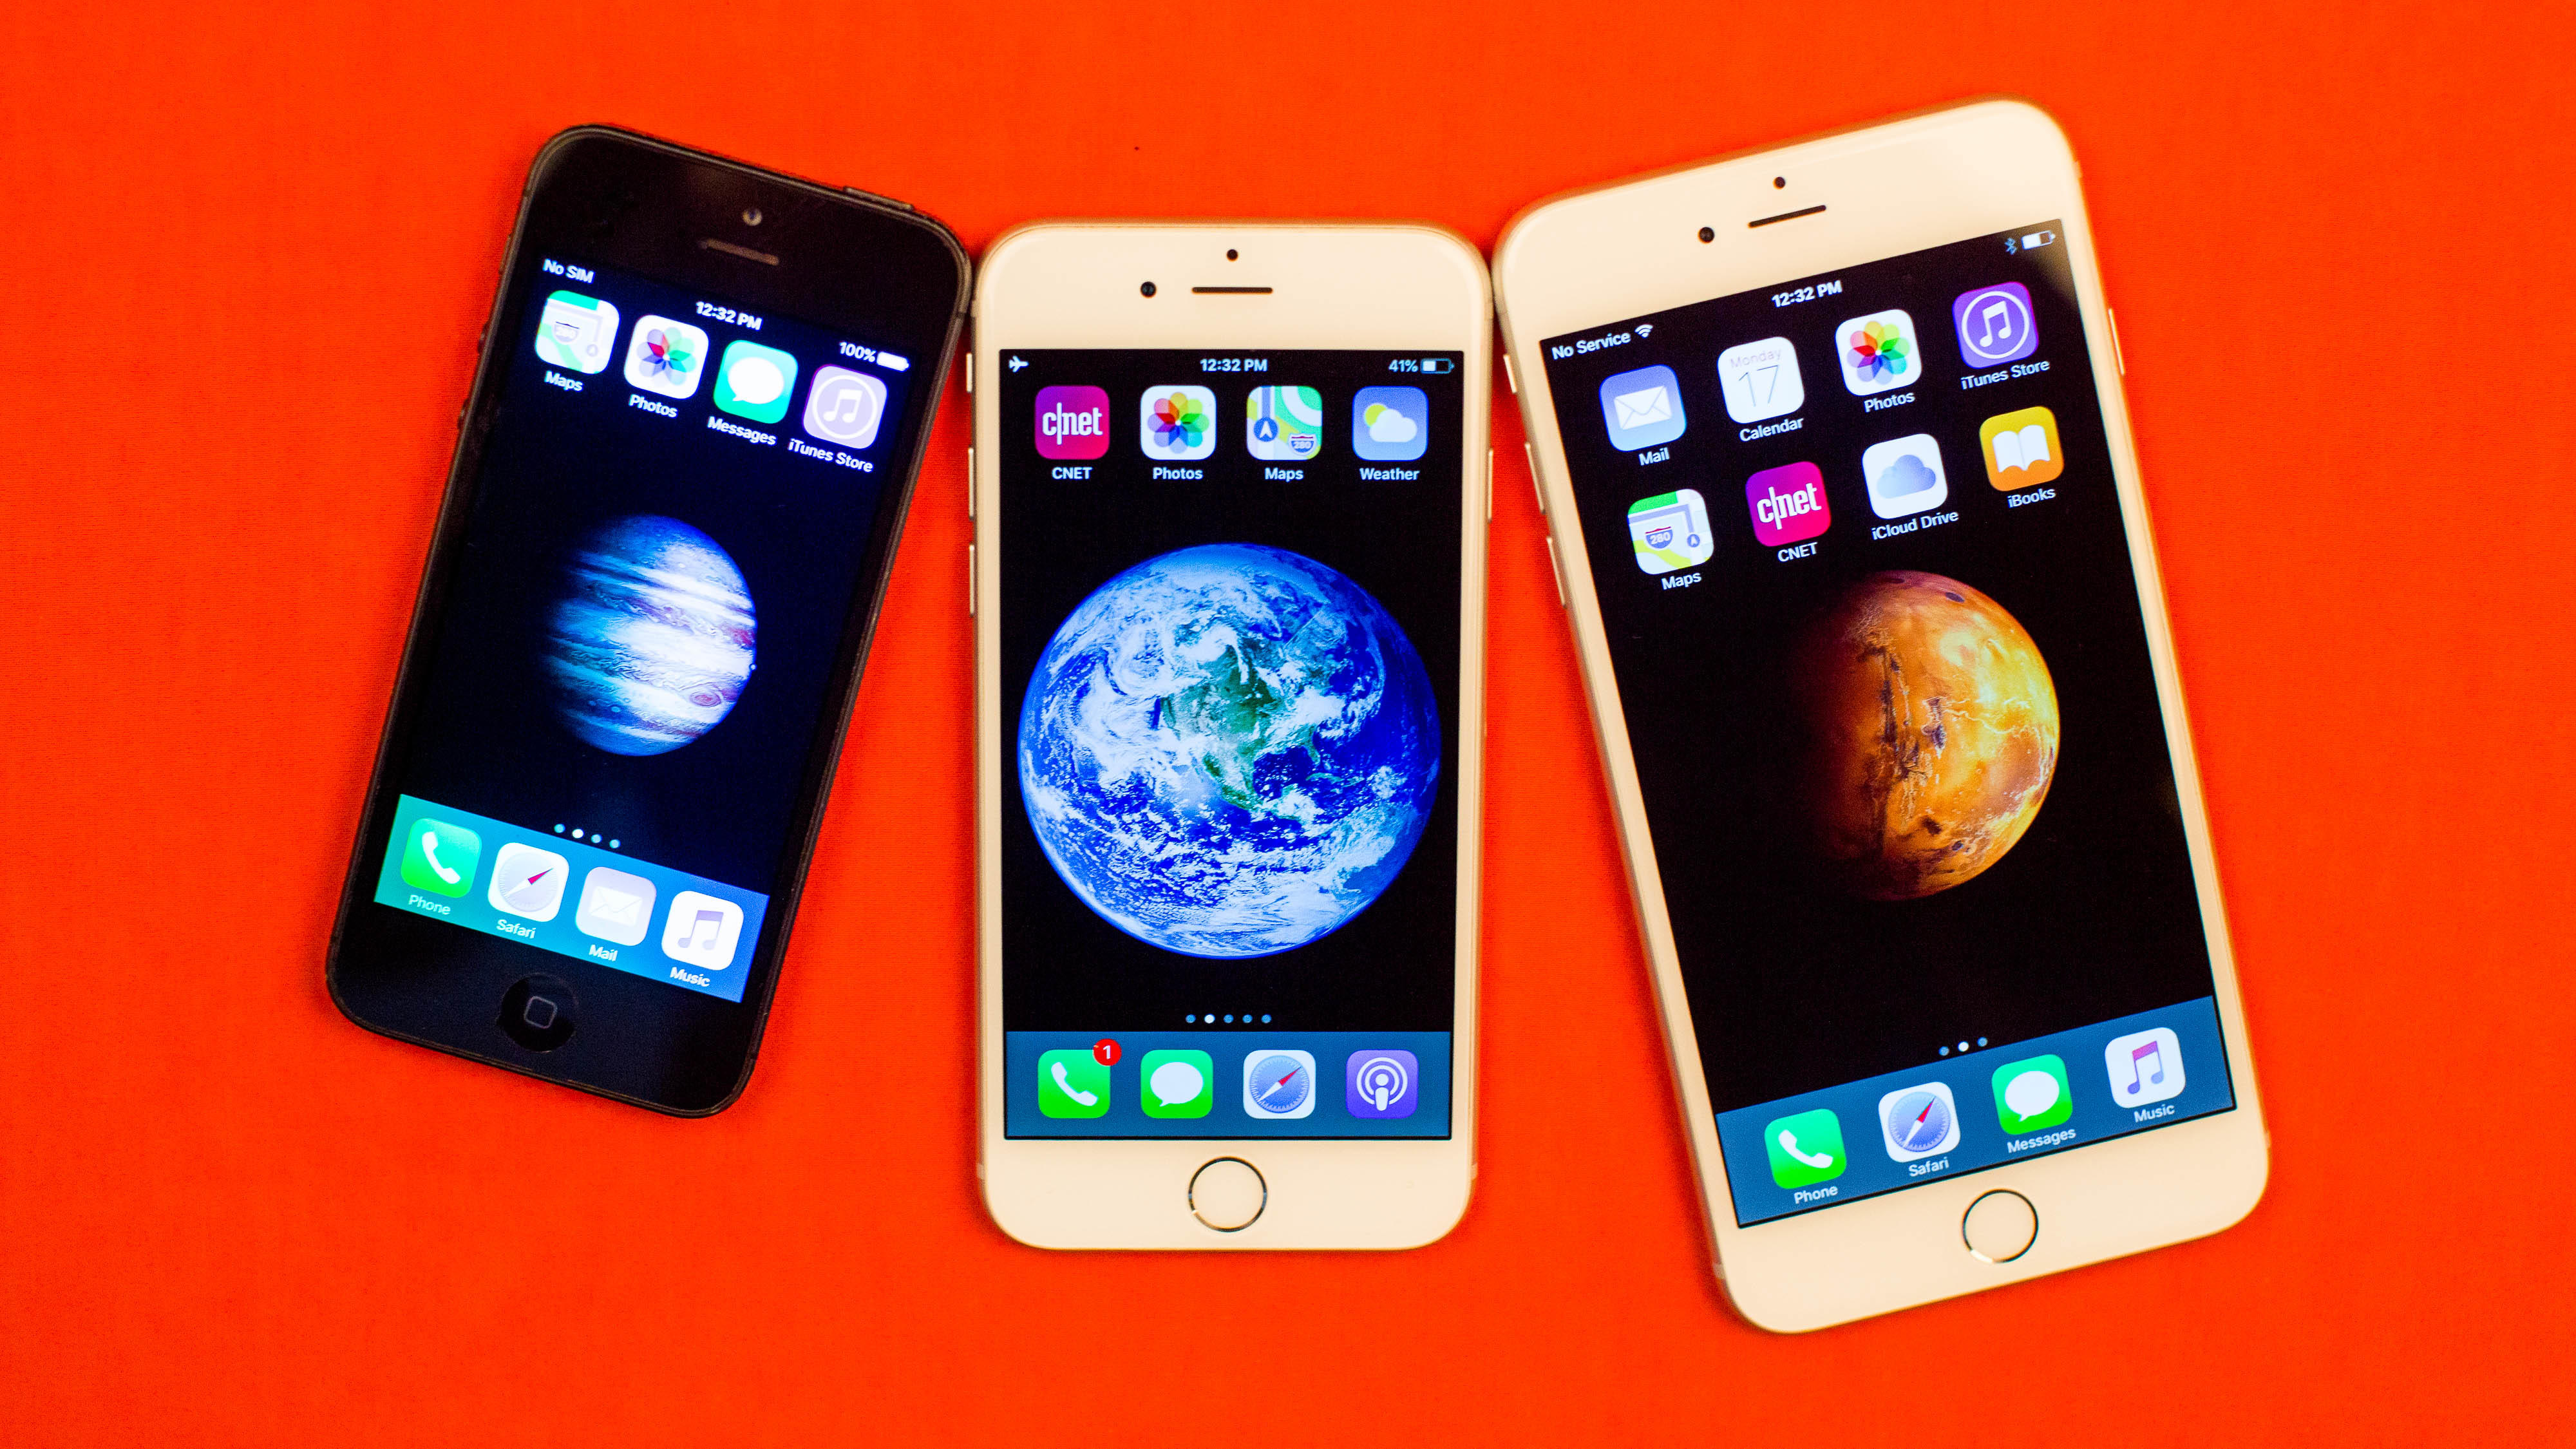 iPhone 5, iPhone 6 and iPhone 6 Plus